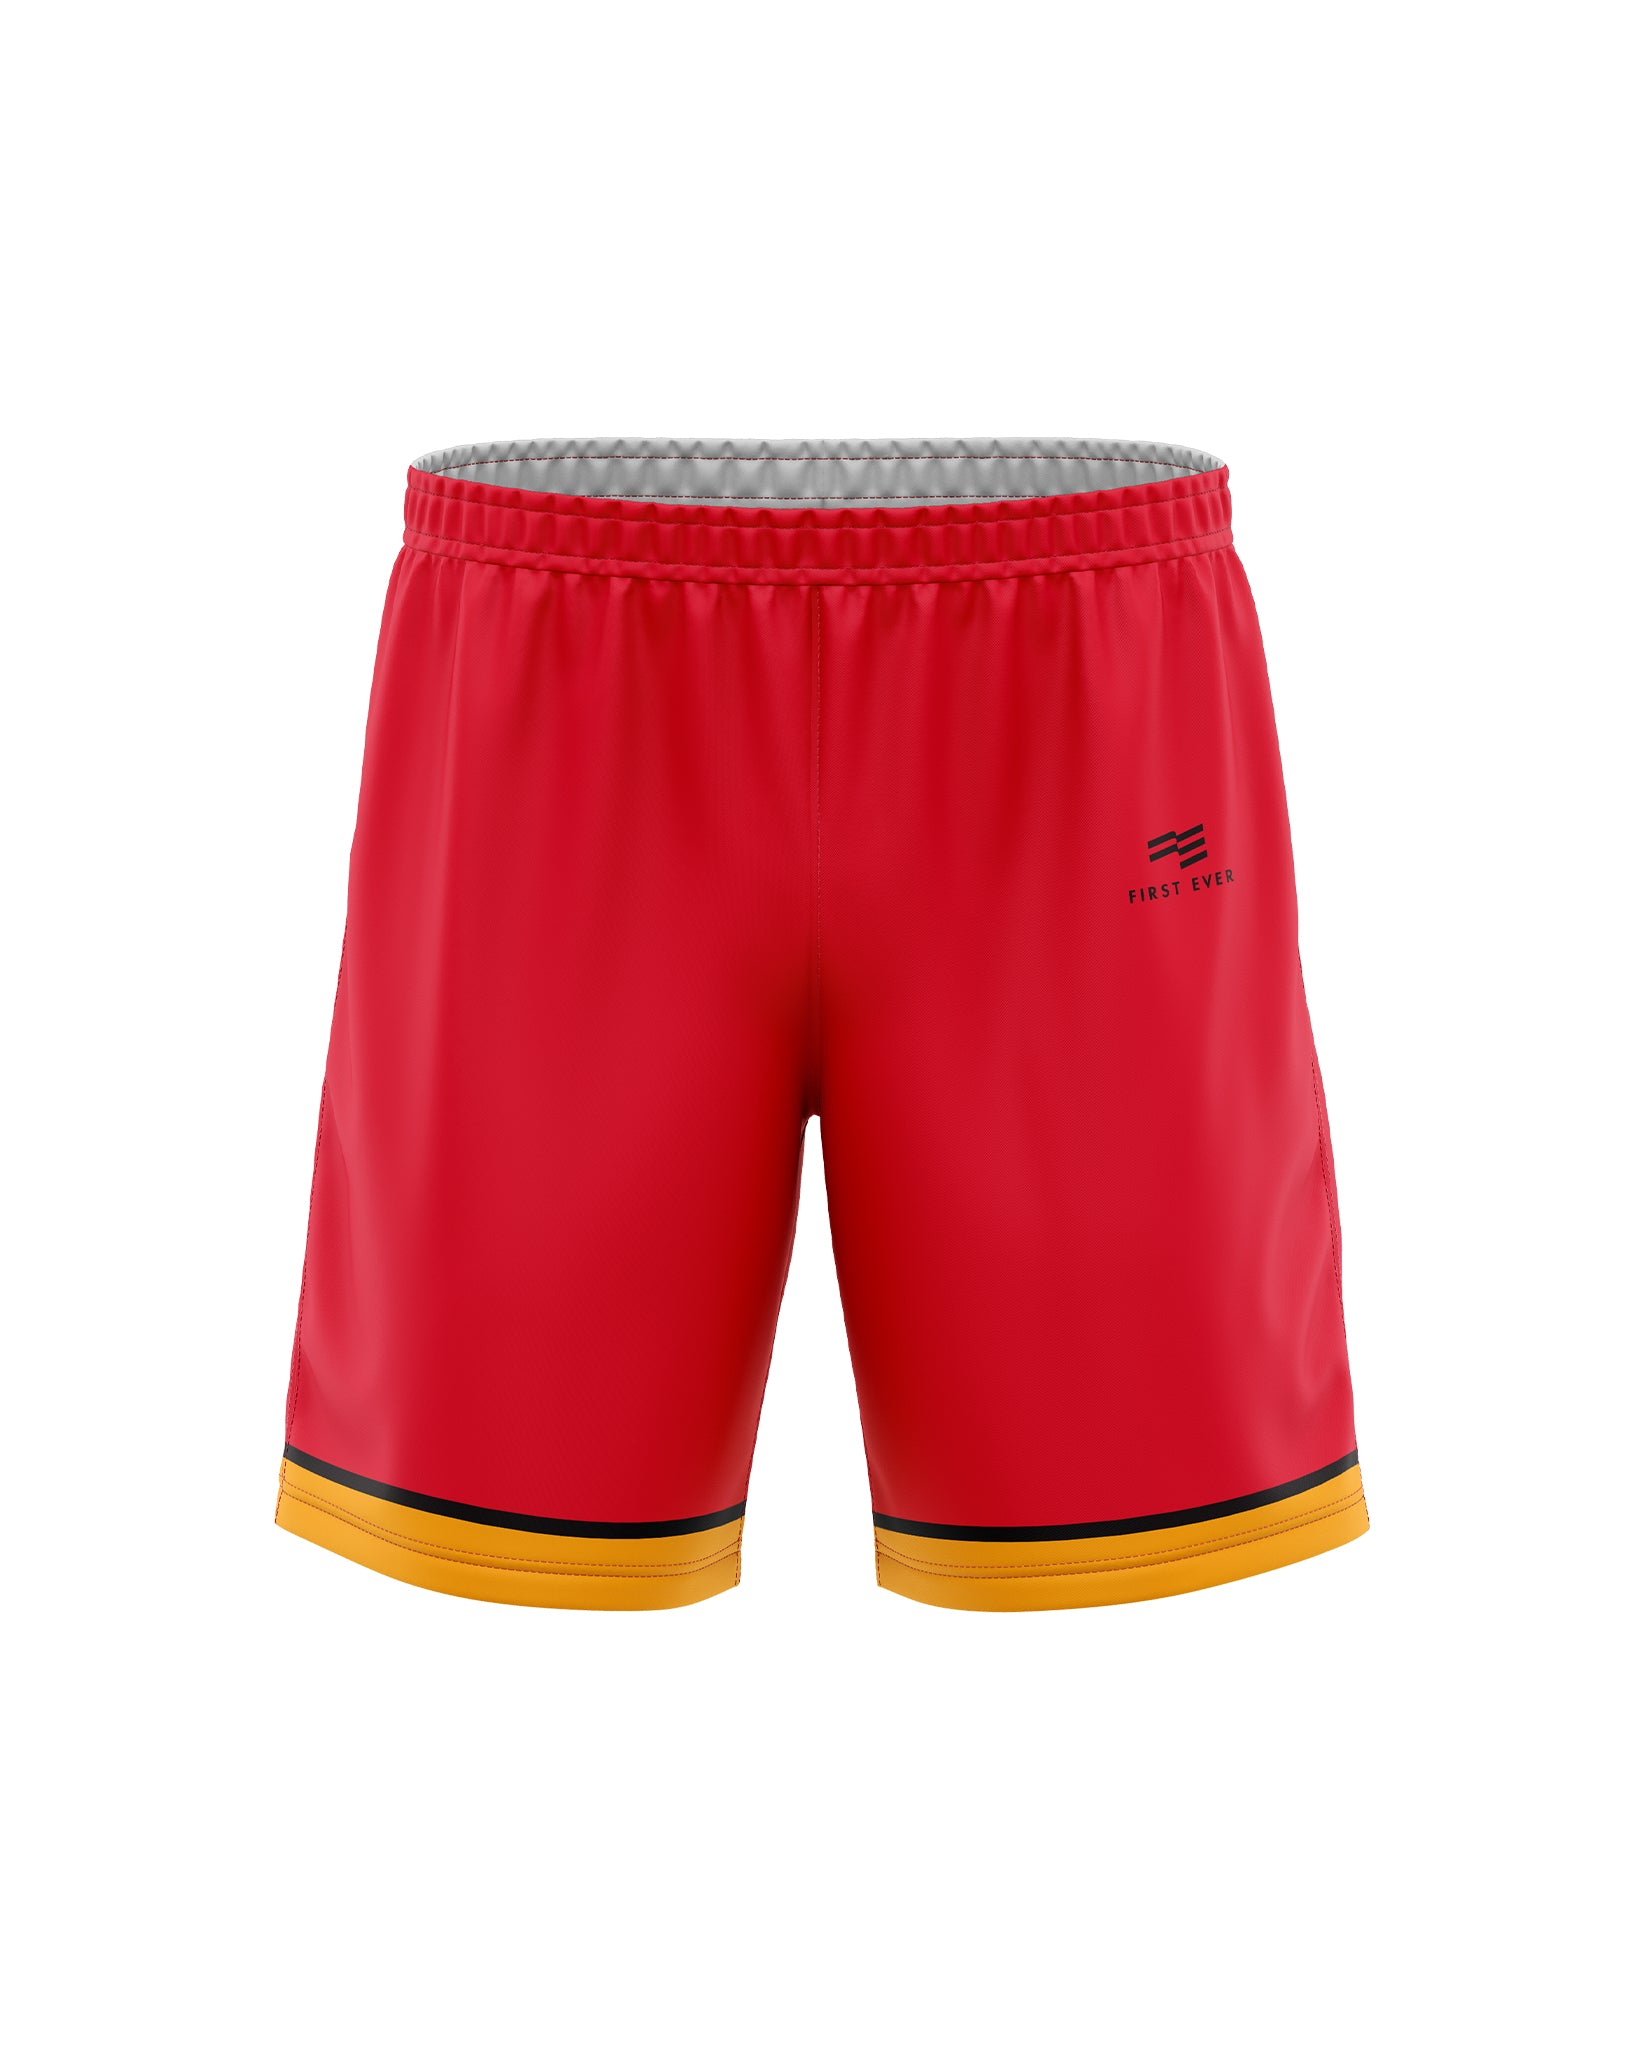 The Pride Shorts - Womens